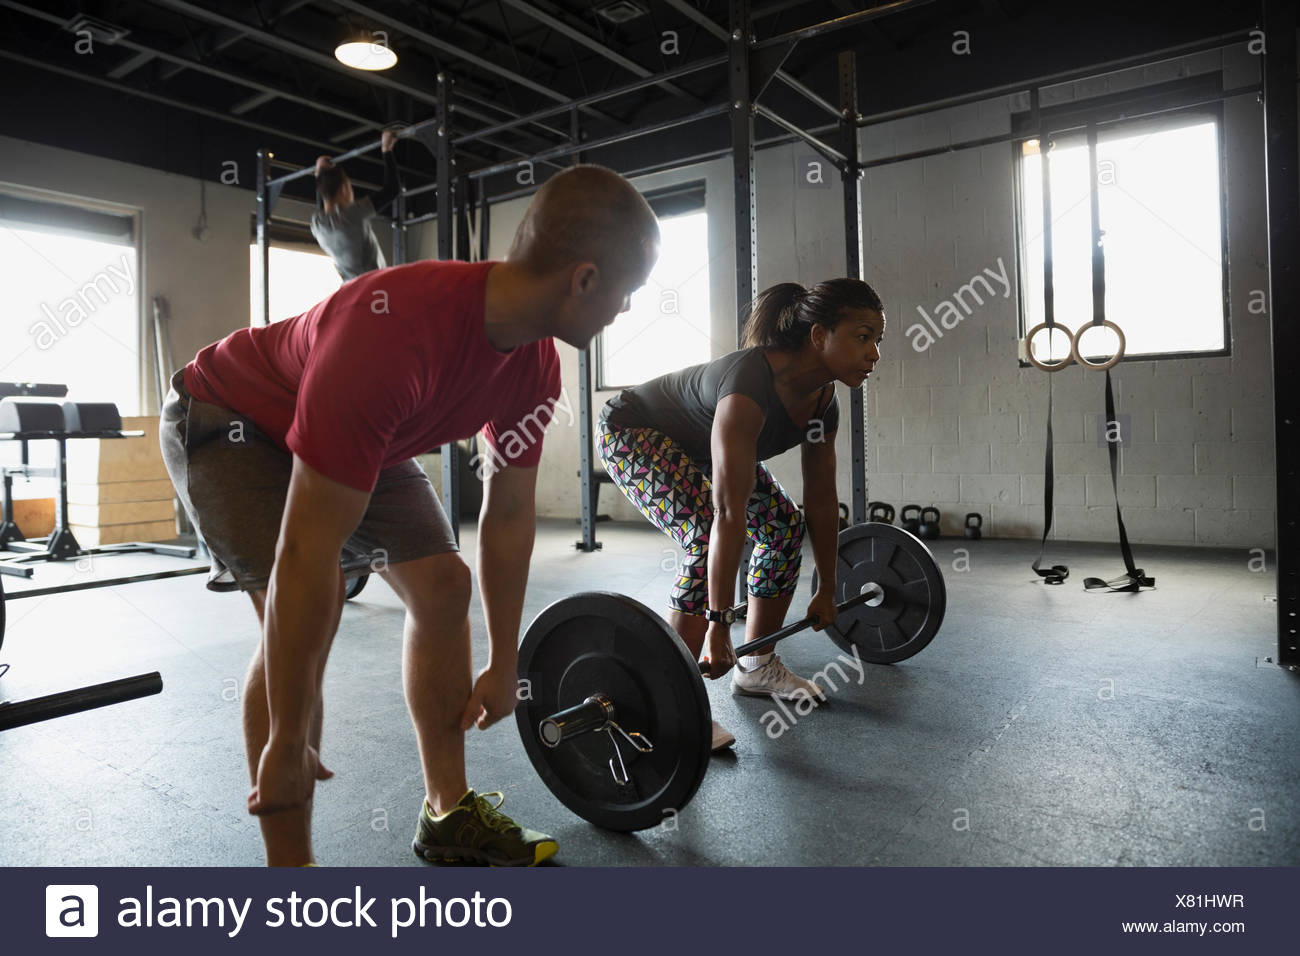 Personal trainer guiding woman weight lifting barbell - Stock Image